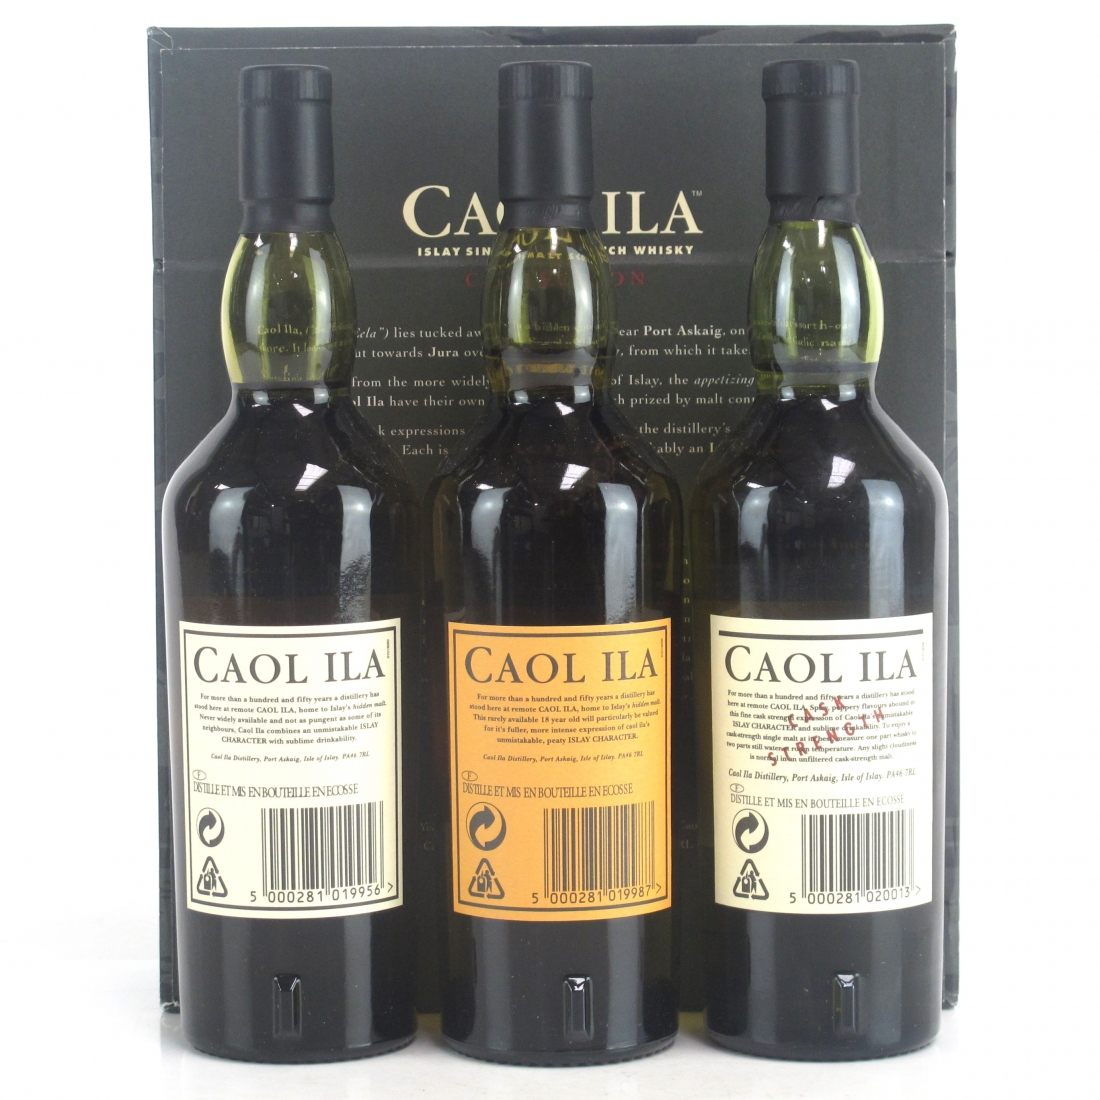 Caol Ila 12 Year Old, 18 Year Old & Cask Strength 3 x 20cl